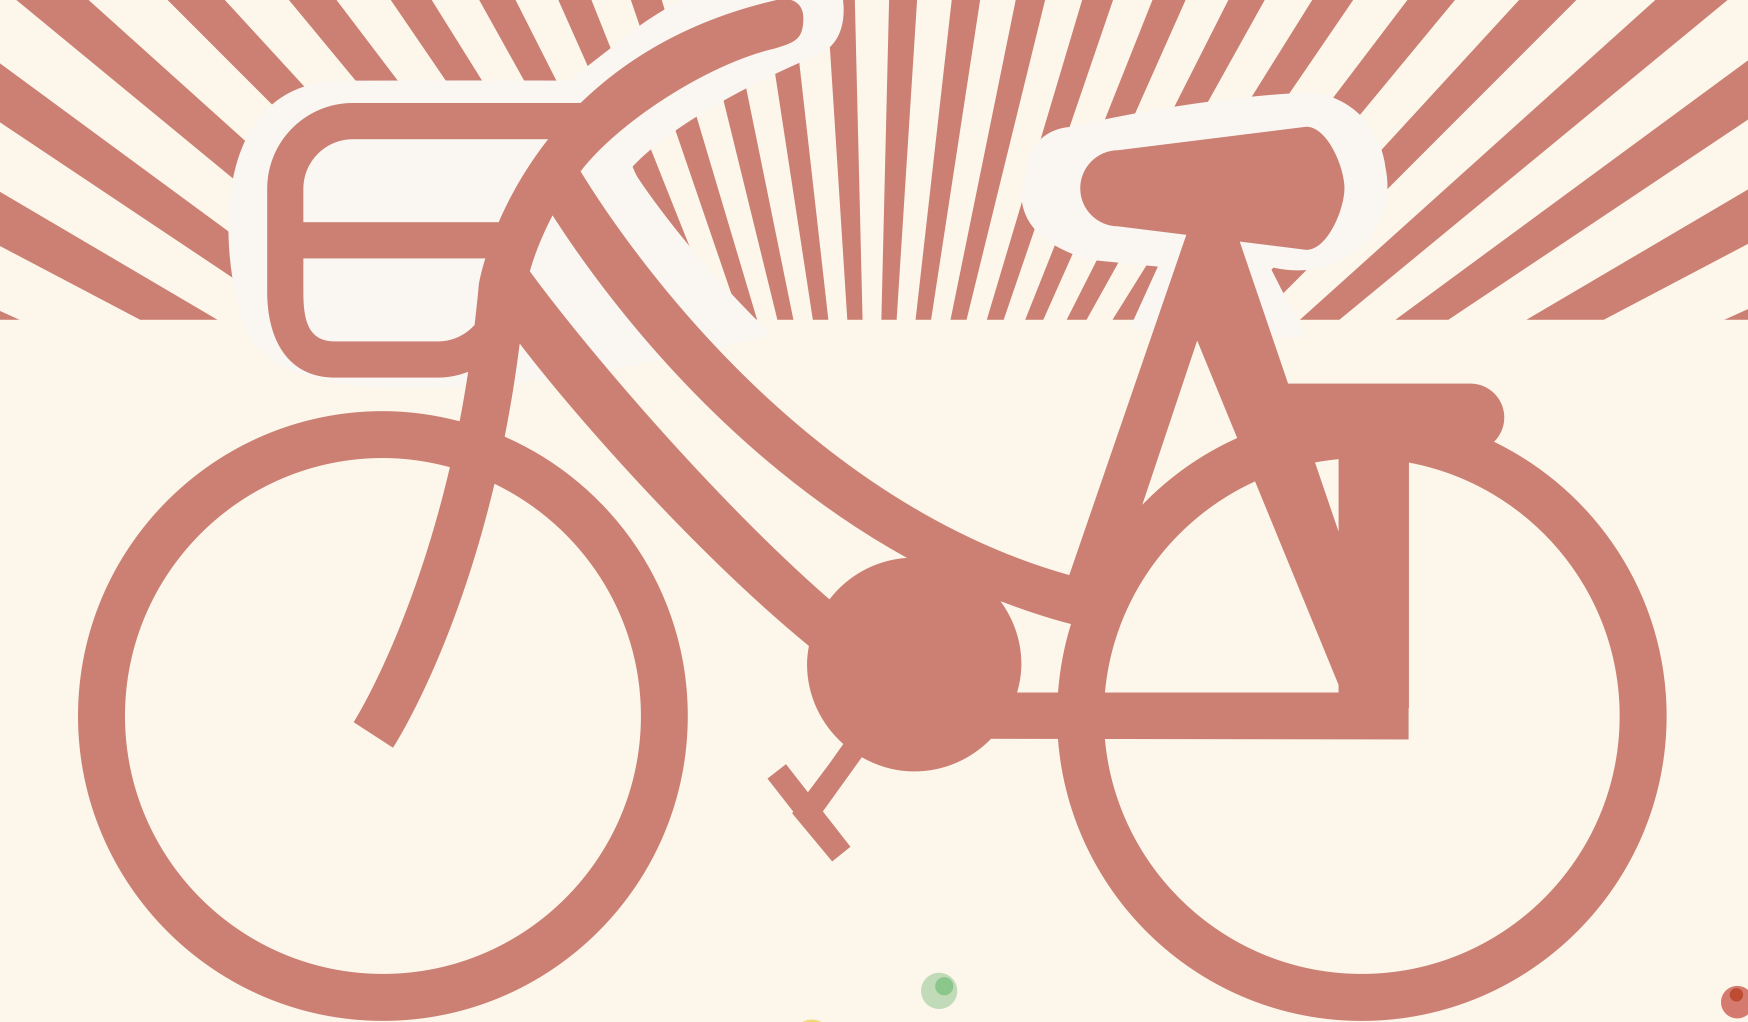 Bike-in Movie logo. Illustrasjon.